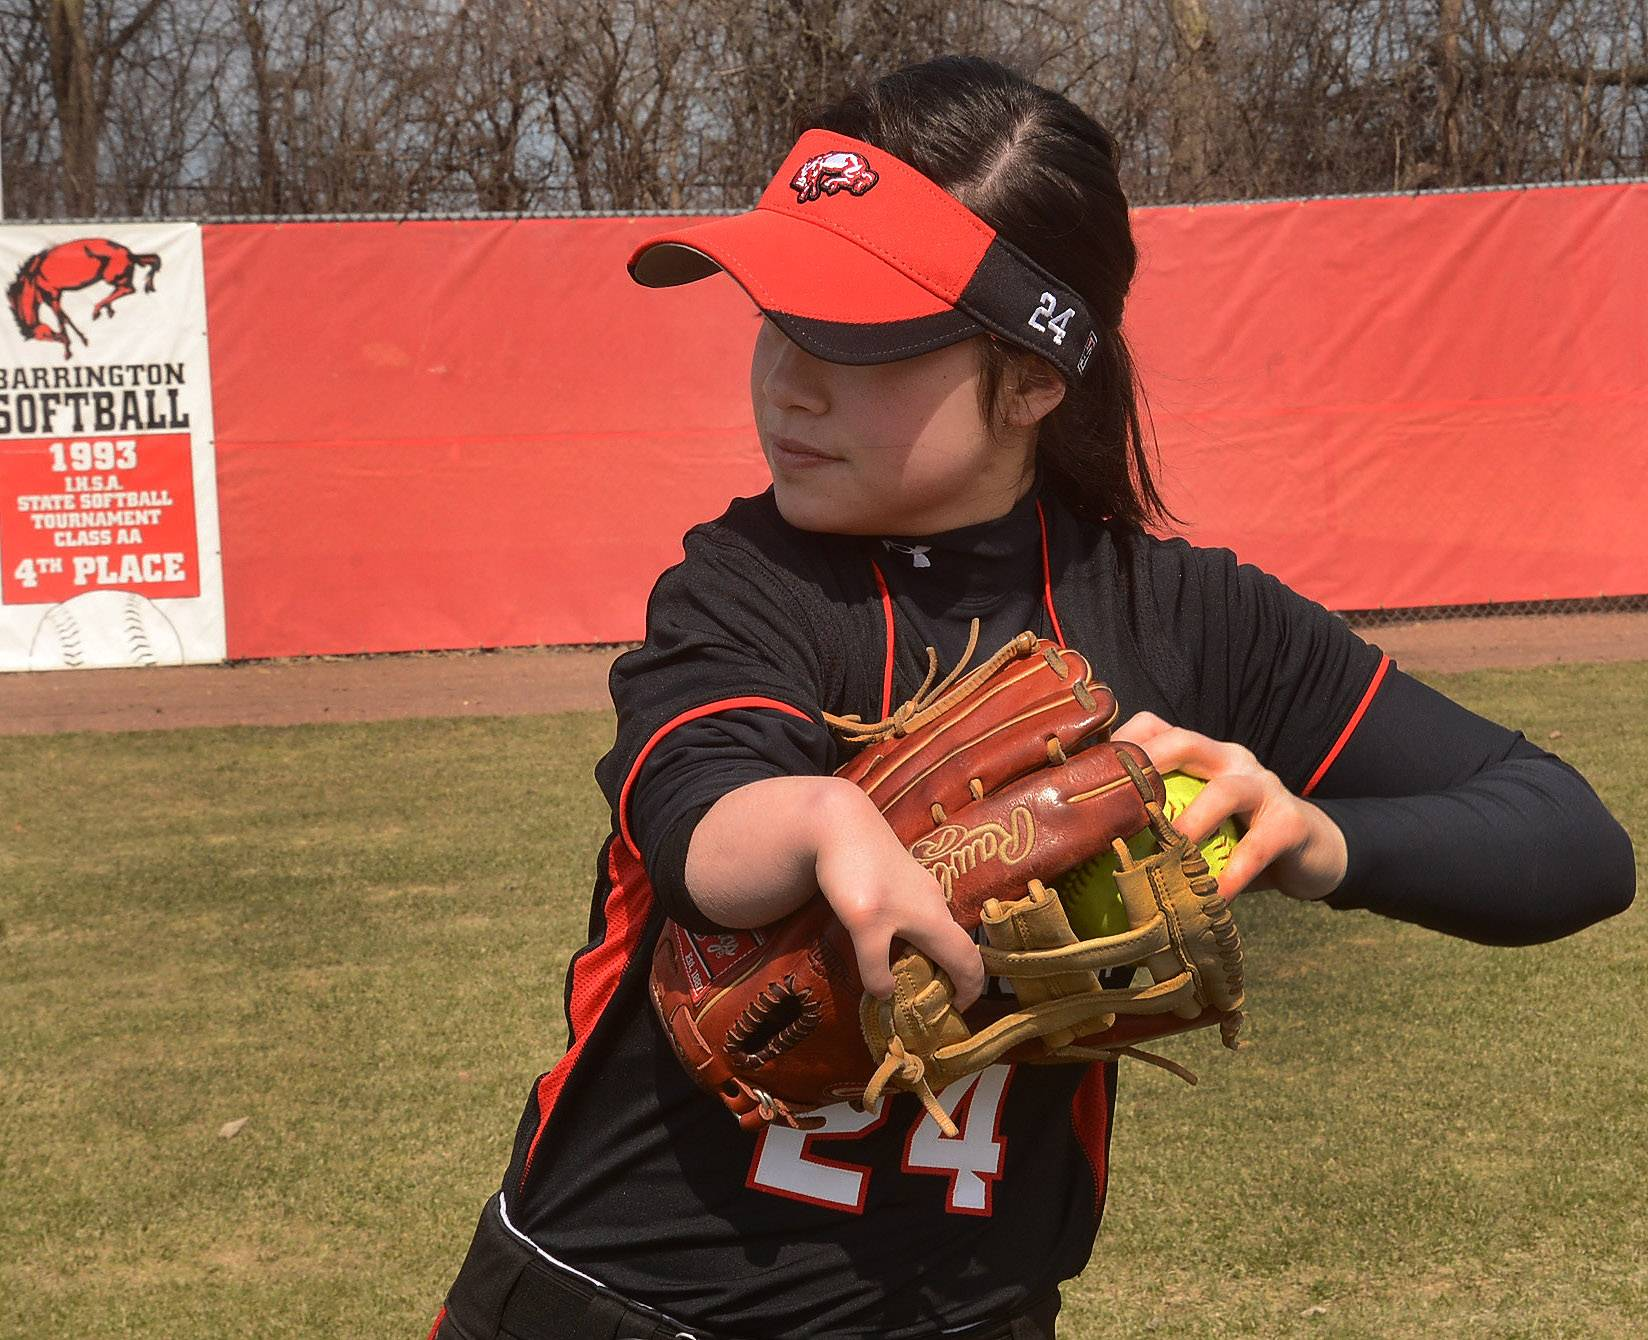 Barrington softball player Caitlin Inamoto has learned to excel using the Jim Abbott-style catching the ball in the mitt, then taking the mitt off and throwing the ball with the same hand.